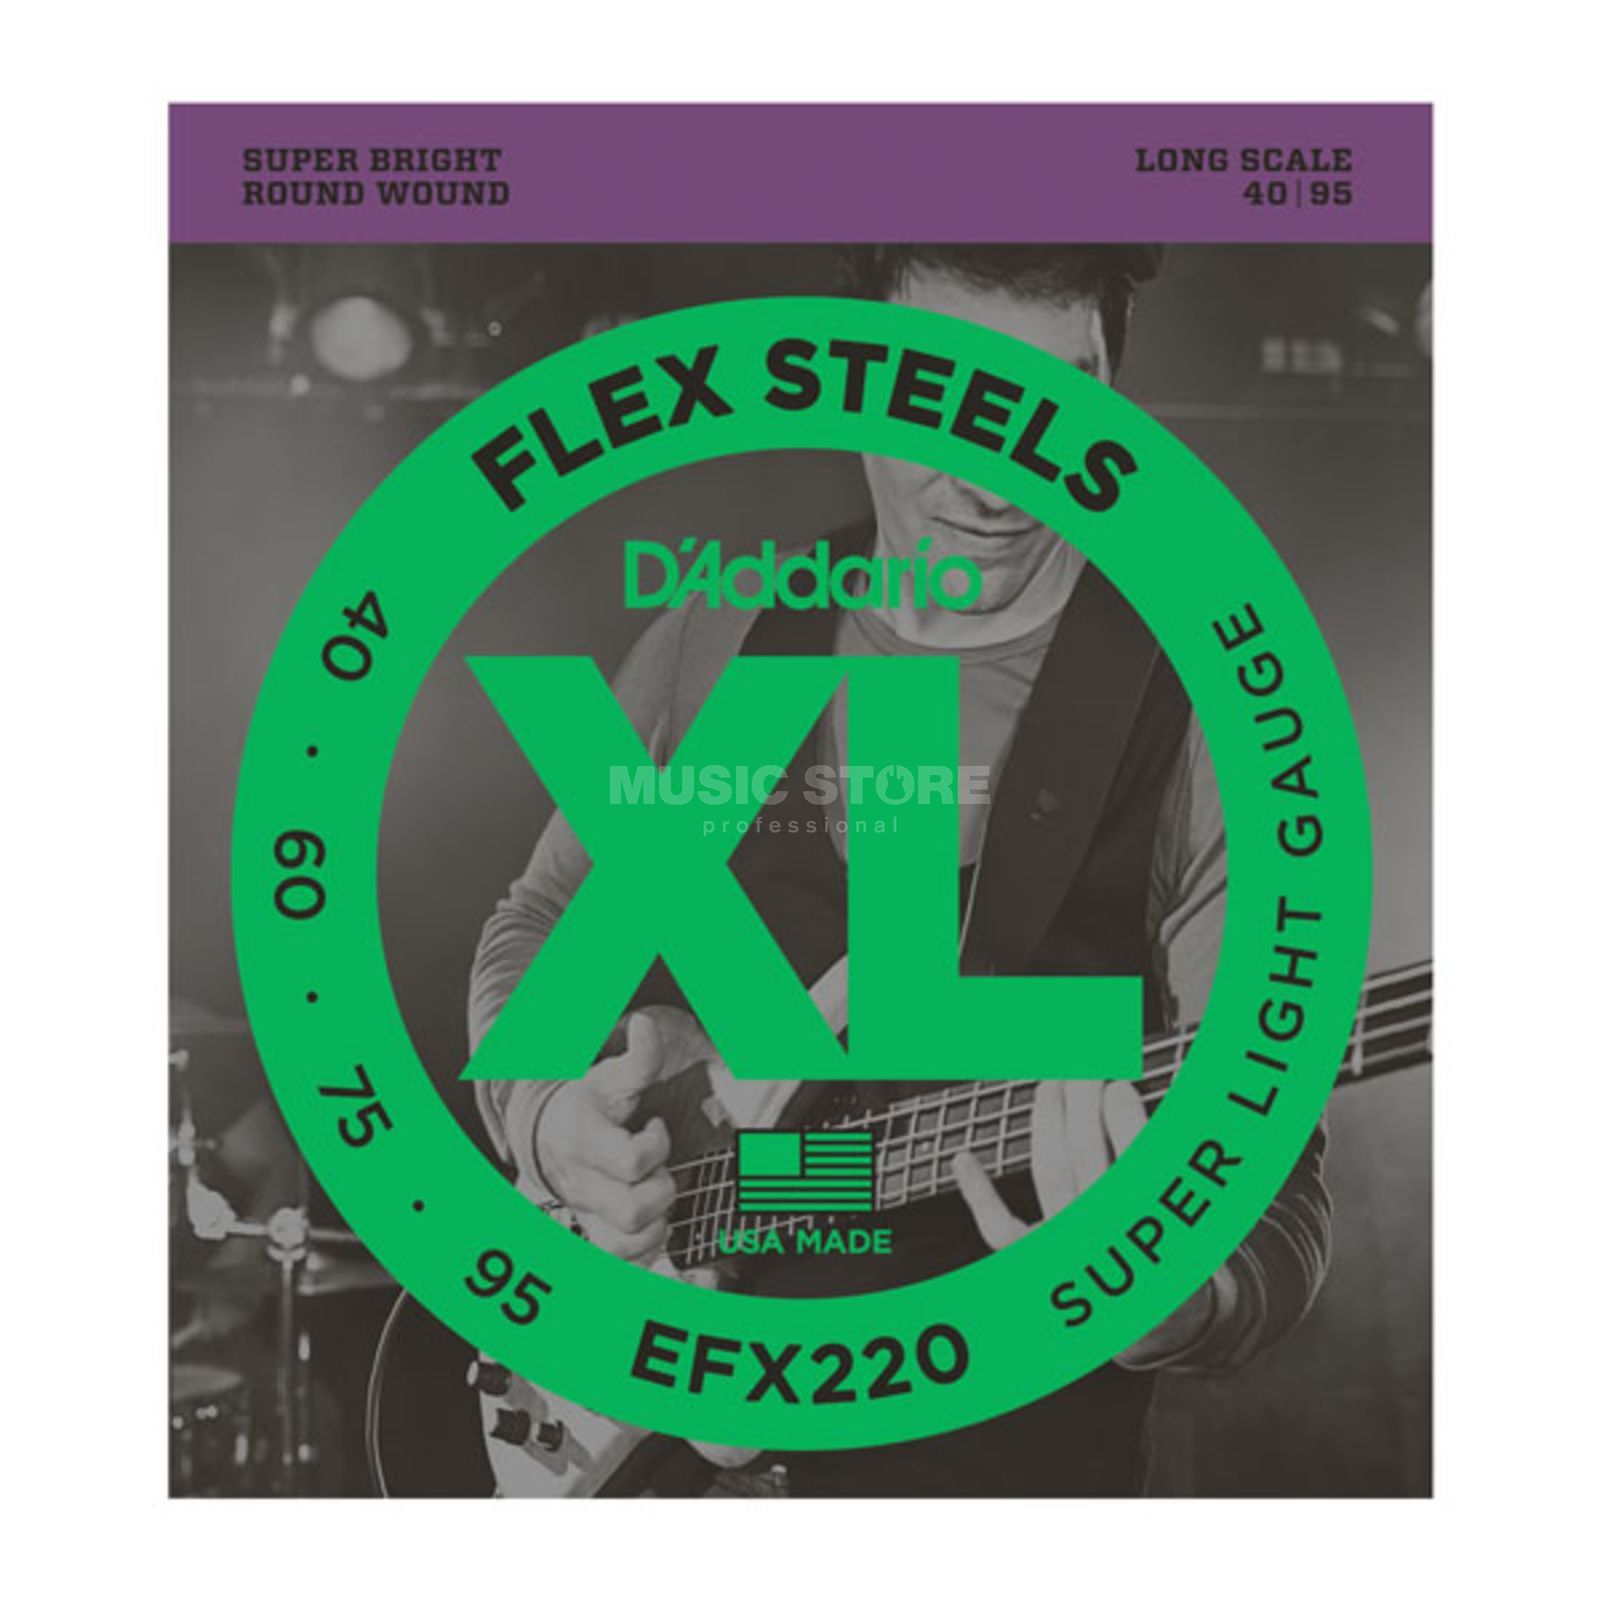 D'Addario Bass Strings Set of 4 EFX FlexSteels 40-095 40-60-075-95, EFX220 Zdjęcie produktu